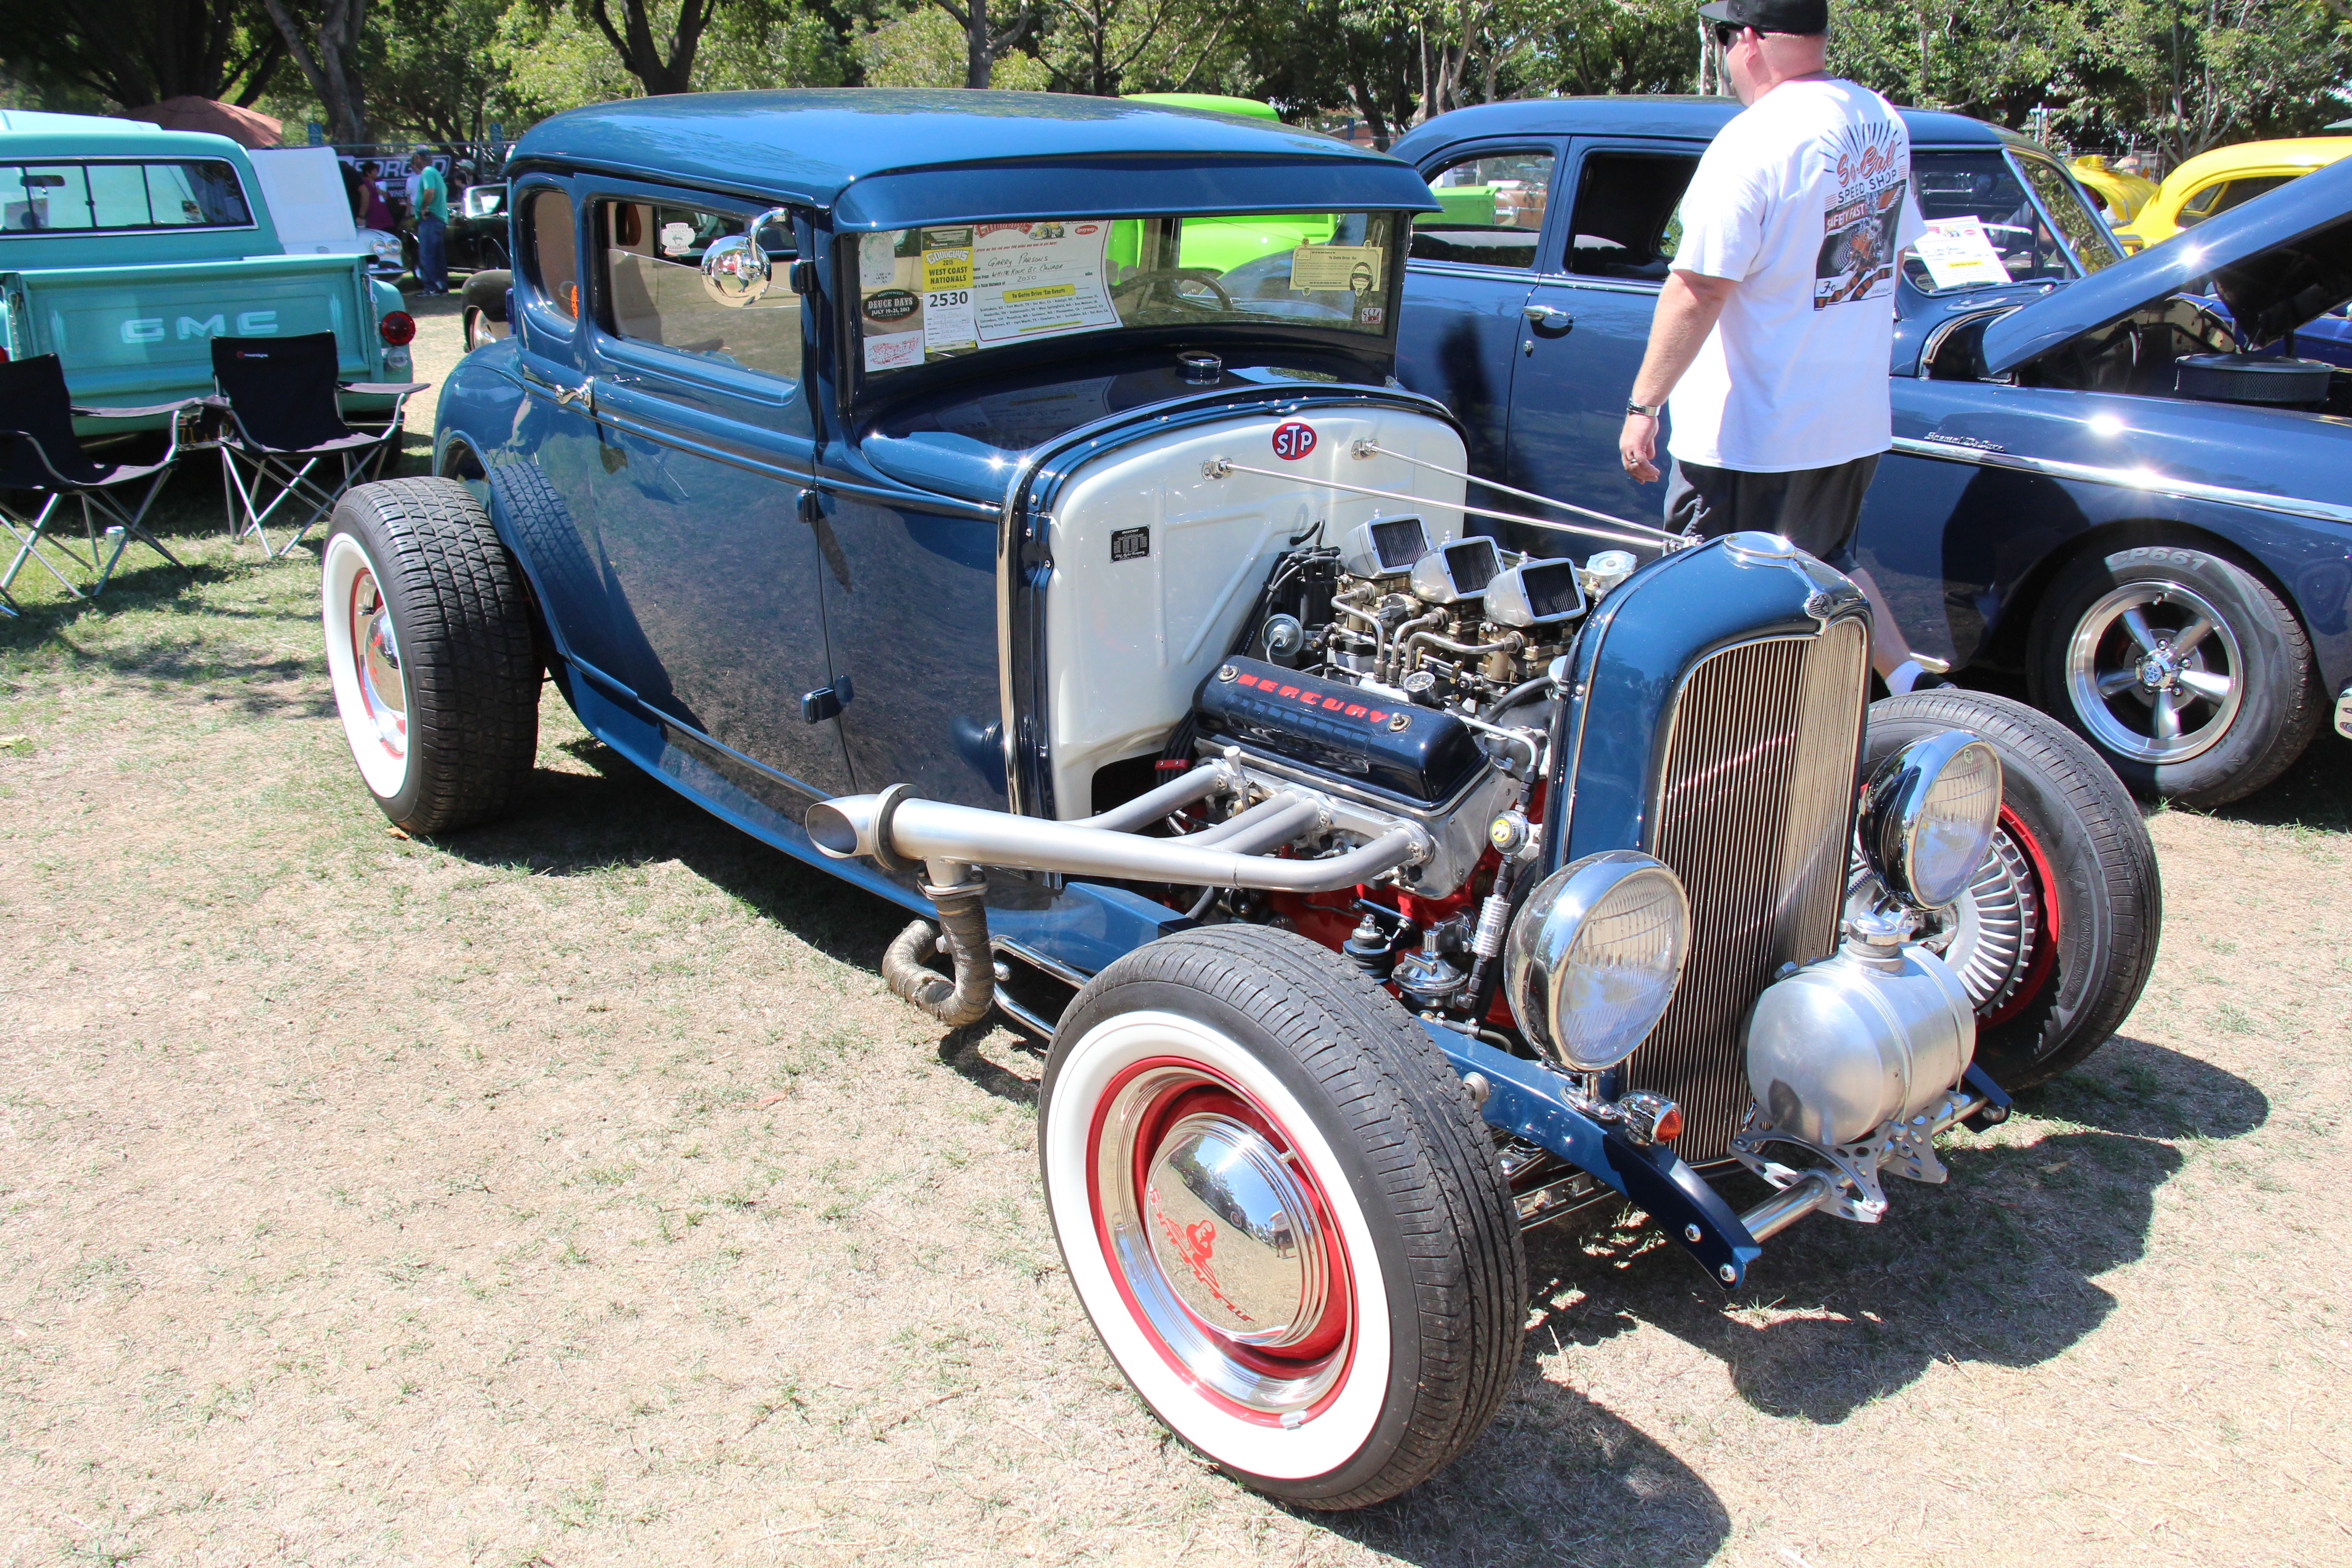 File:1930 Ford Model A Coupe Hot Rod (20915879026).jpg - Wikimedia ...